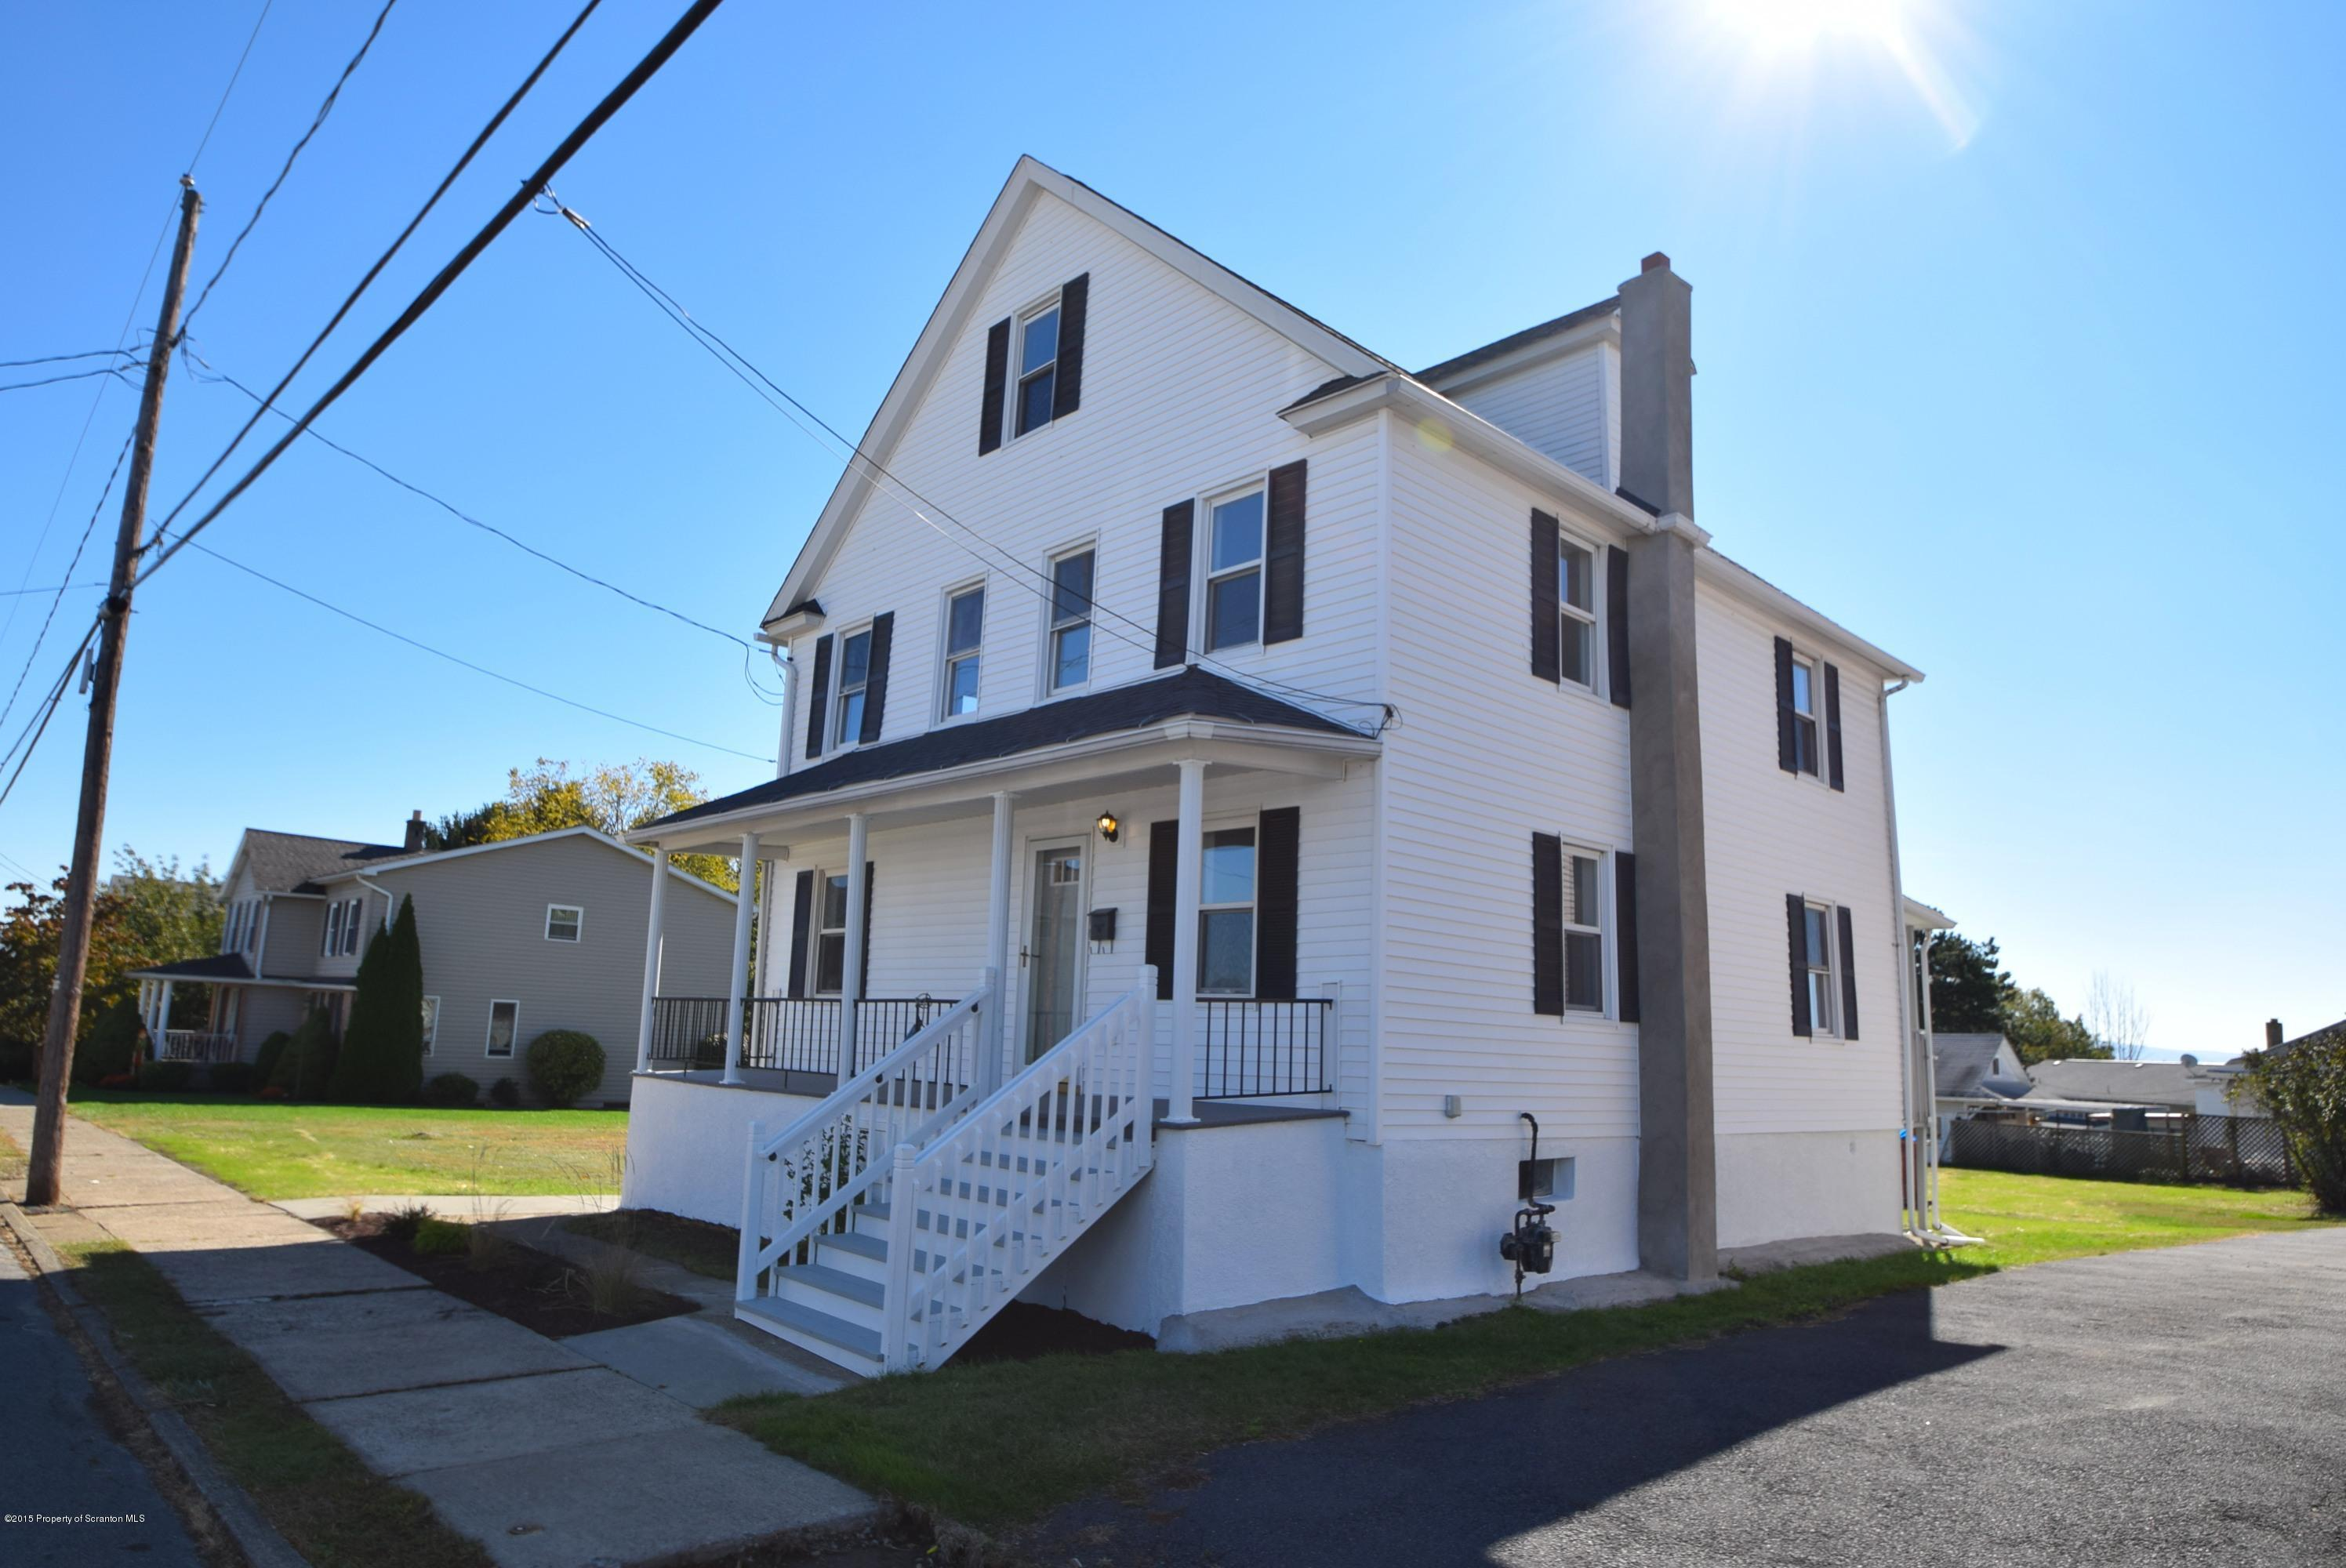 416 Mary St, Old Forge, Pennsylvania 18518, 3 Bedrooms Bedrooms, 6 Rooms Rooms,2 BathroomsBathrooms,Single Family,For Sale,Mary,15-5160